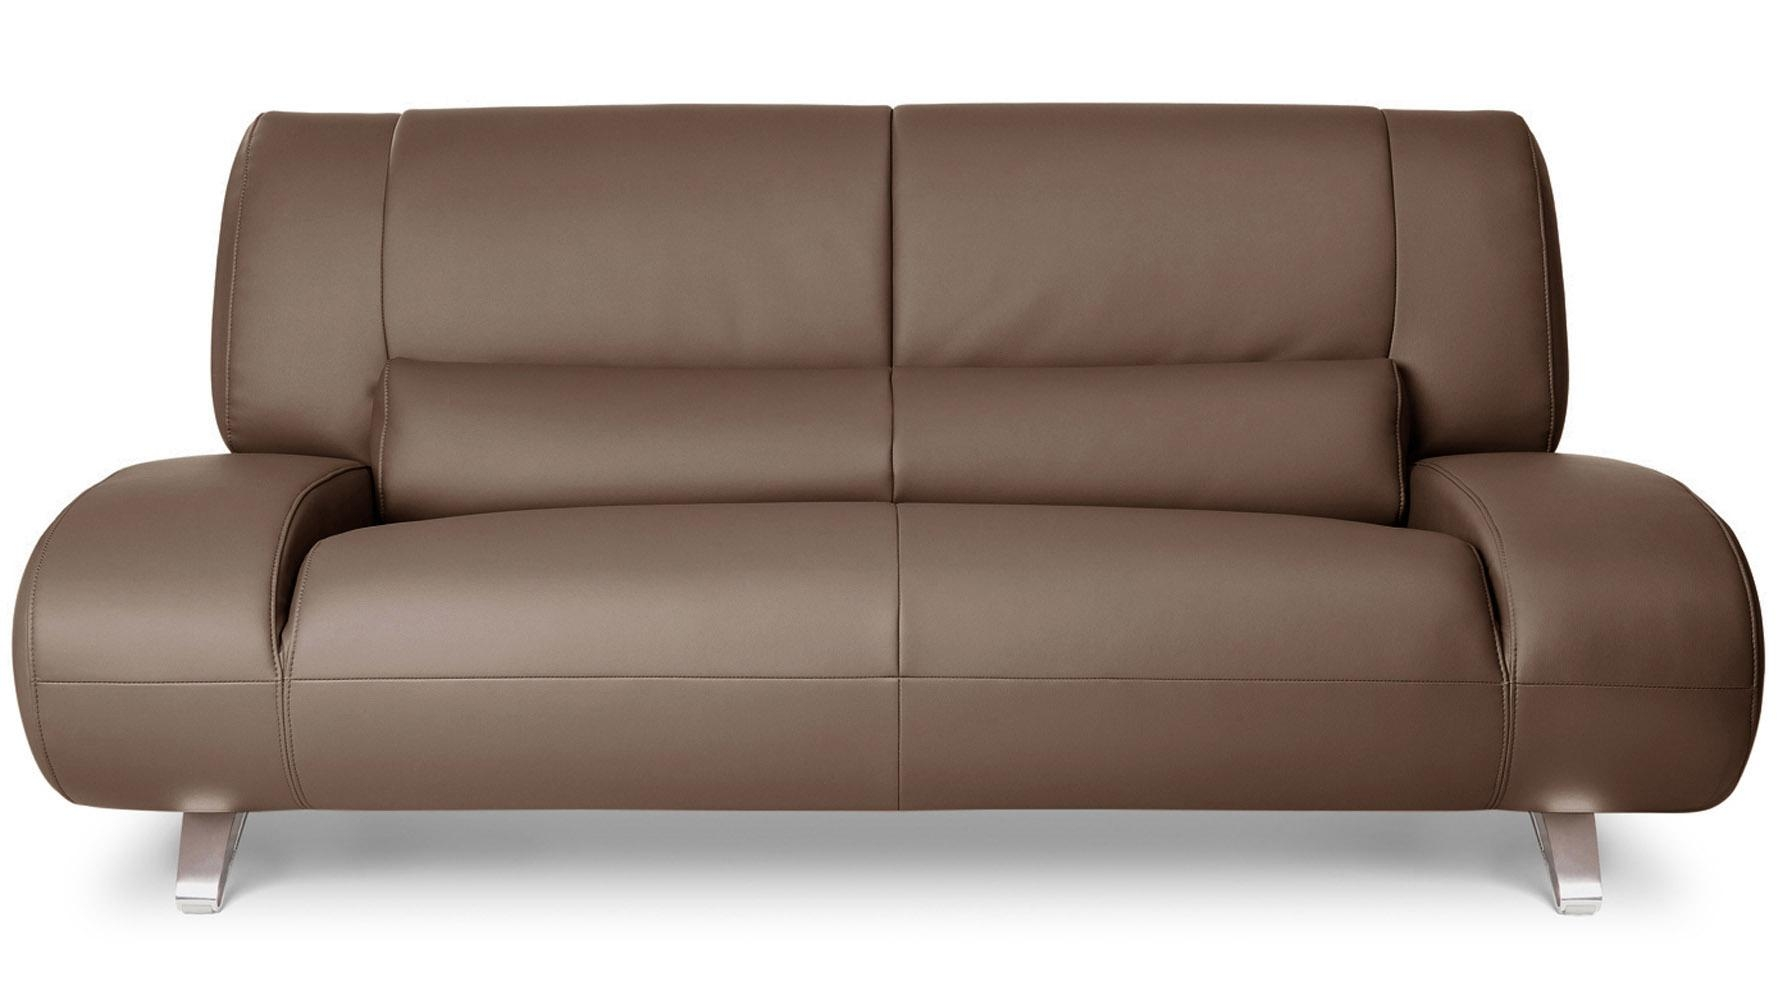 Brown Aspen Leather Sofa Set With Loveseat And Chair | Zuri Furniture Regarding Aspen Leather Sofas (Image 12 of 20)